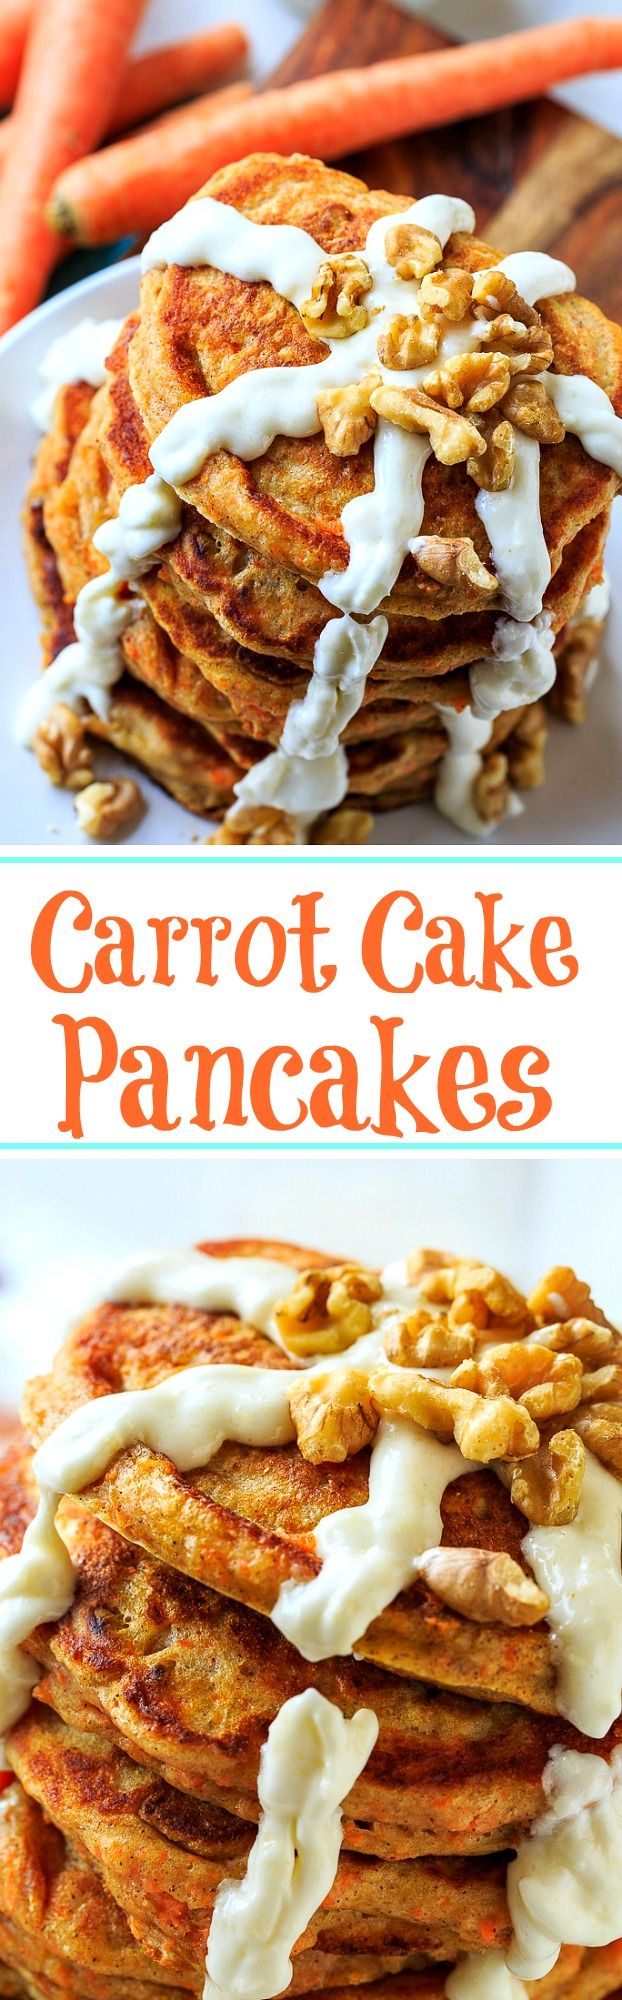 Carrot Cake Pancakes with Cream Cheese Glaze and toasted walnuts. #easter #carrotcake #pancakes